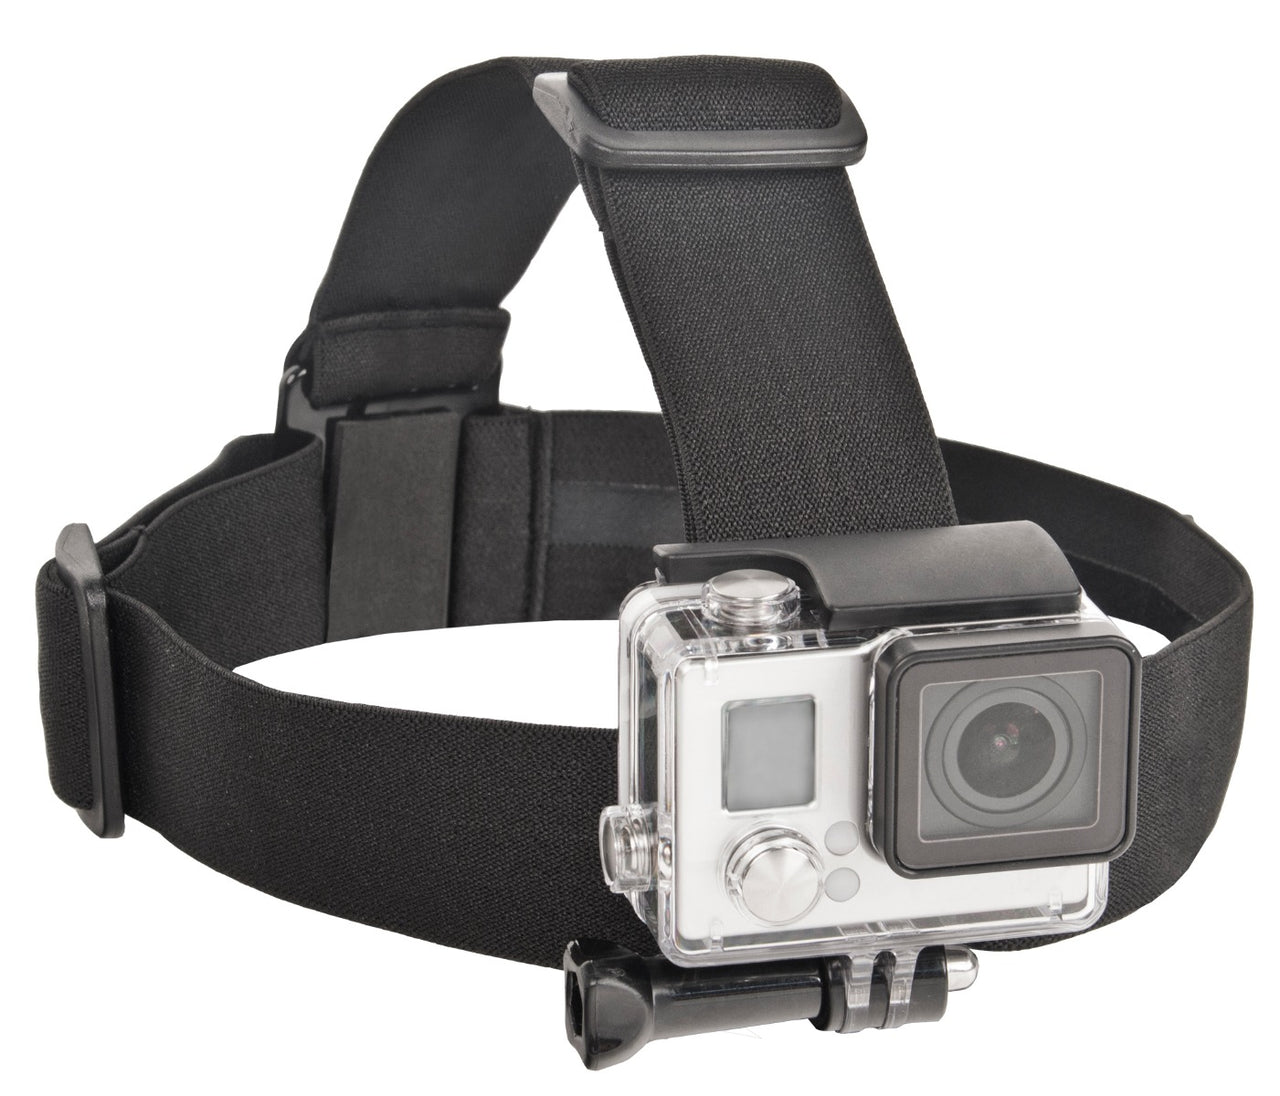 Xtreme Action Series Elastic Head Strap for GoPro 3, 3+, 4, 5, LCD and Session Action Cameras